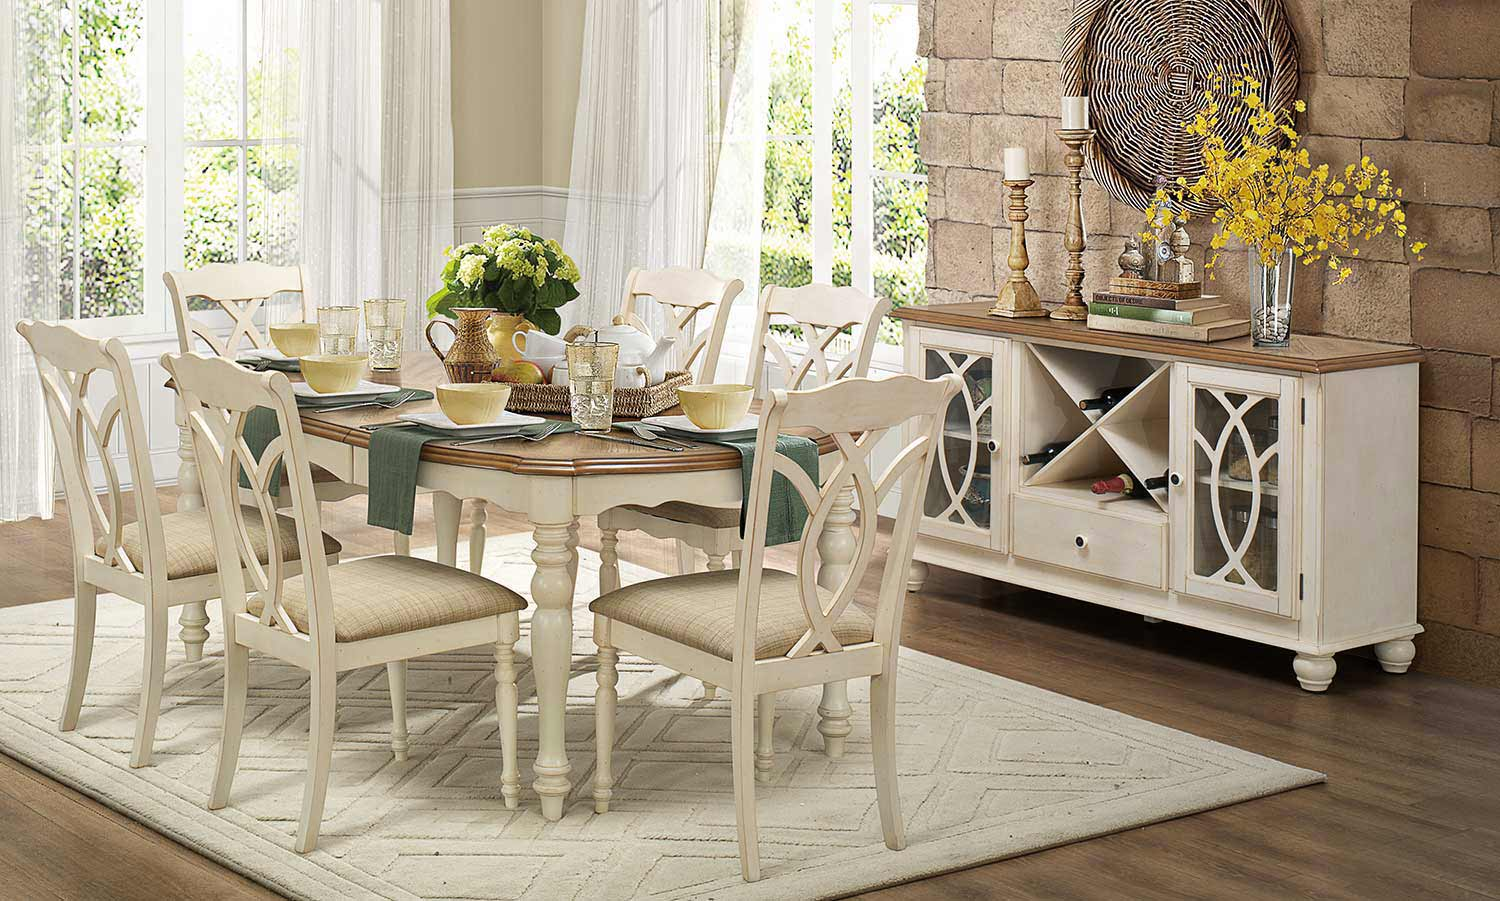 Homelegance Azalea Dining Set - Antique White - Homelegance Azalea Dining Set - Antique White 5145-Dining-Set